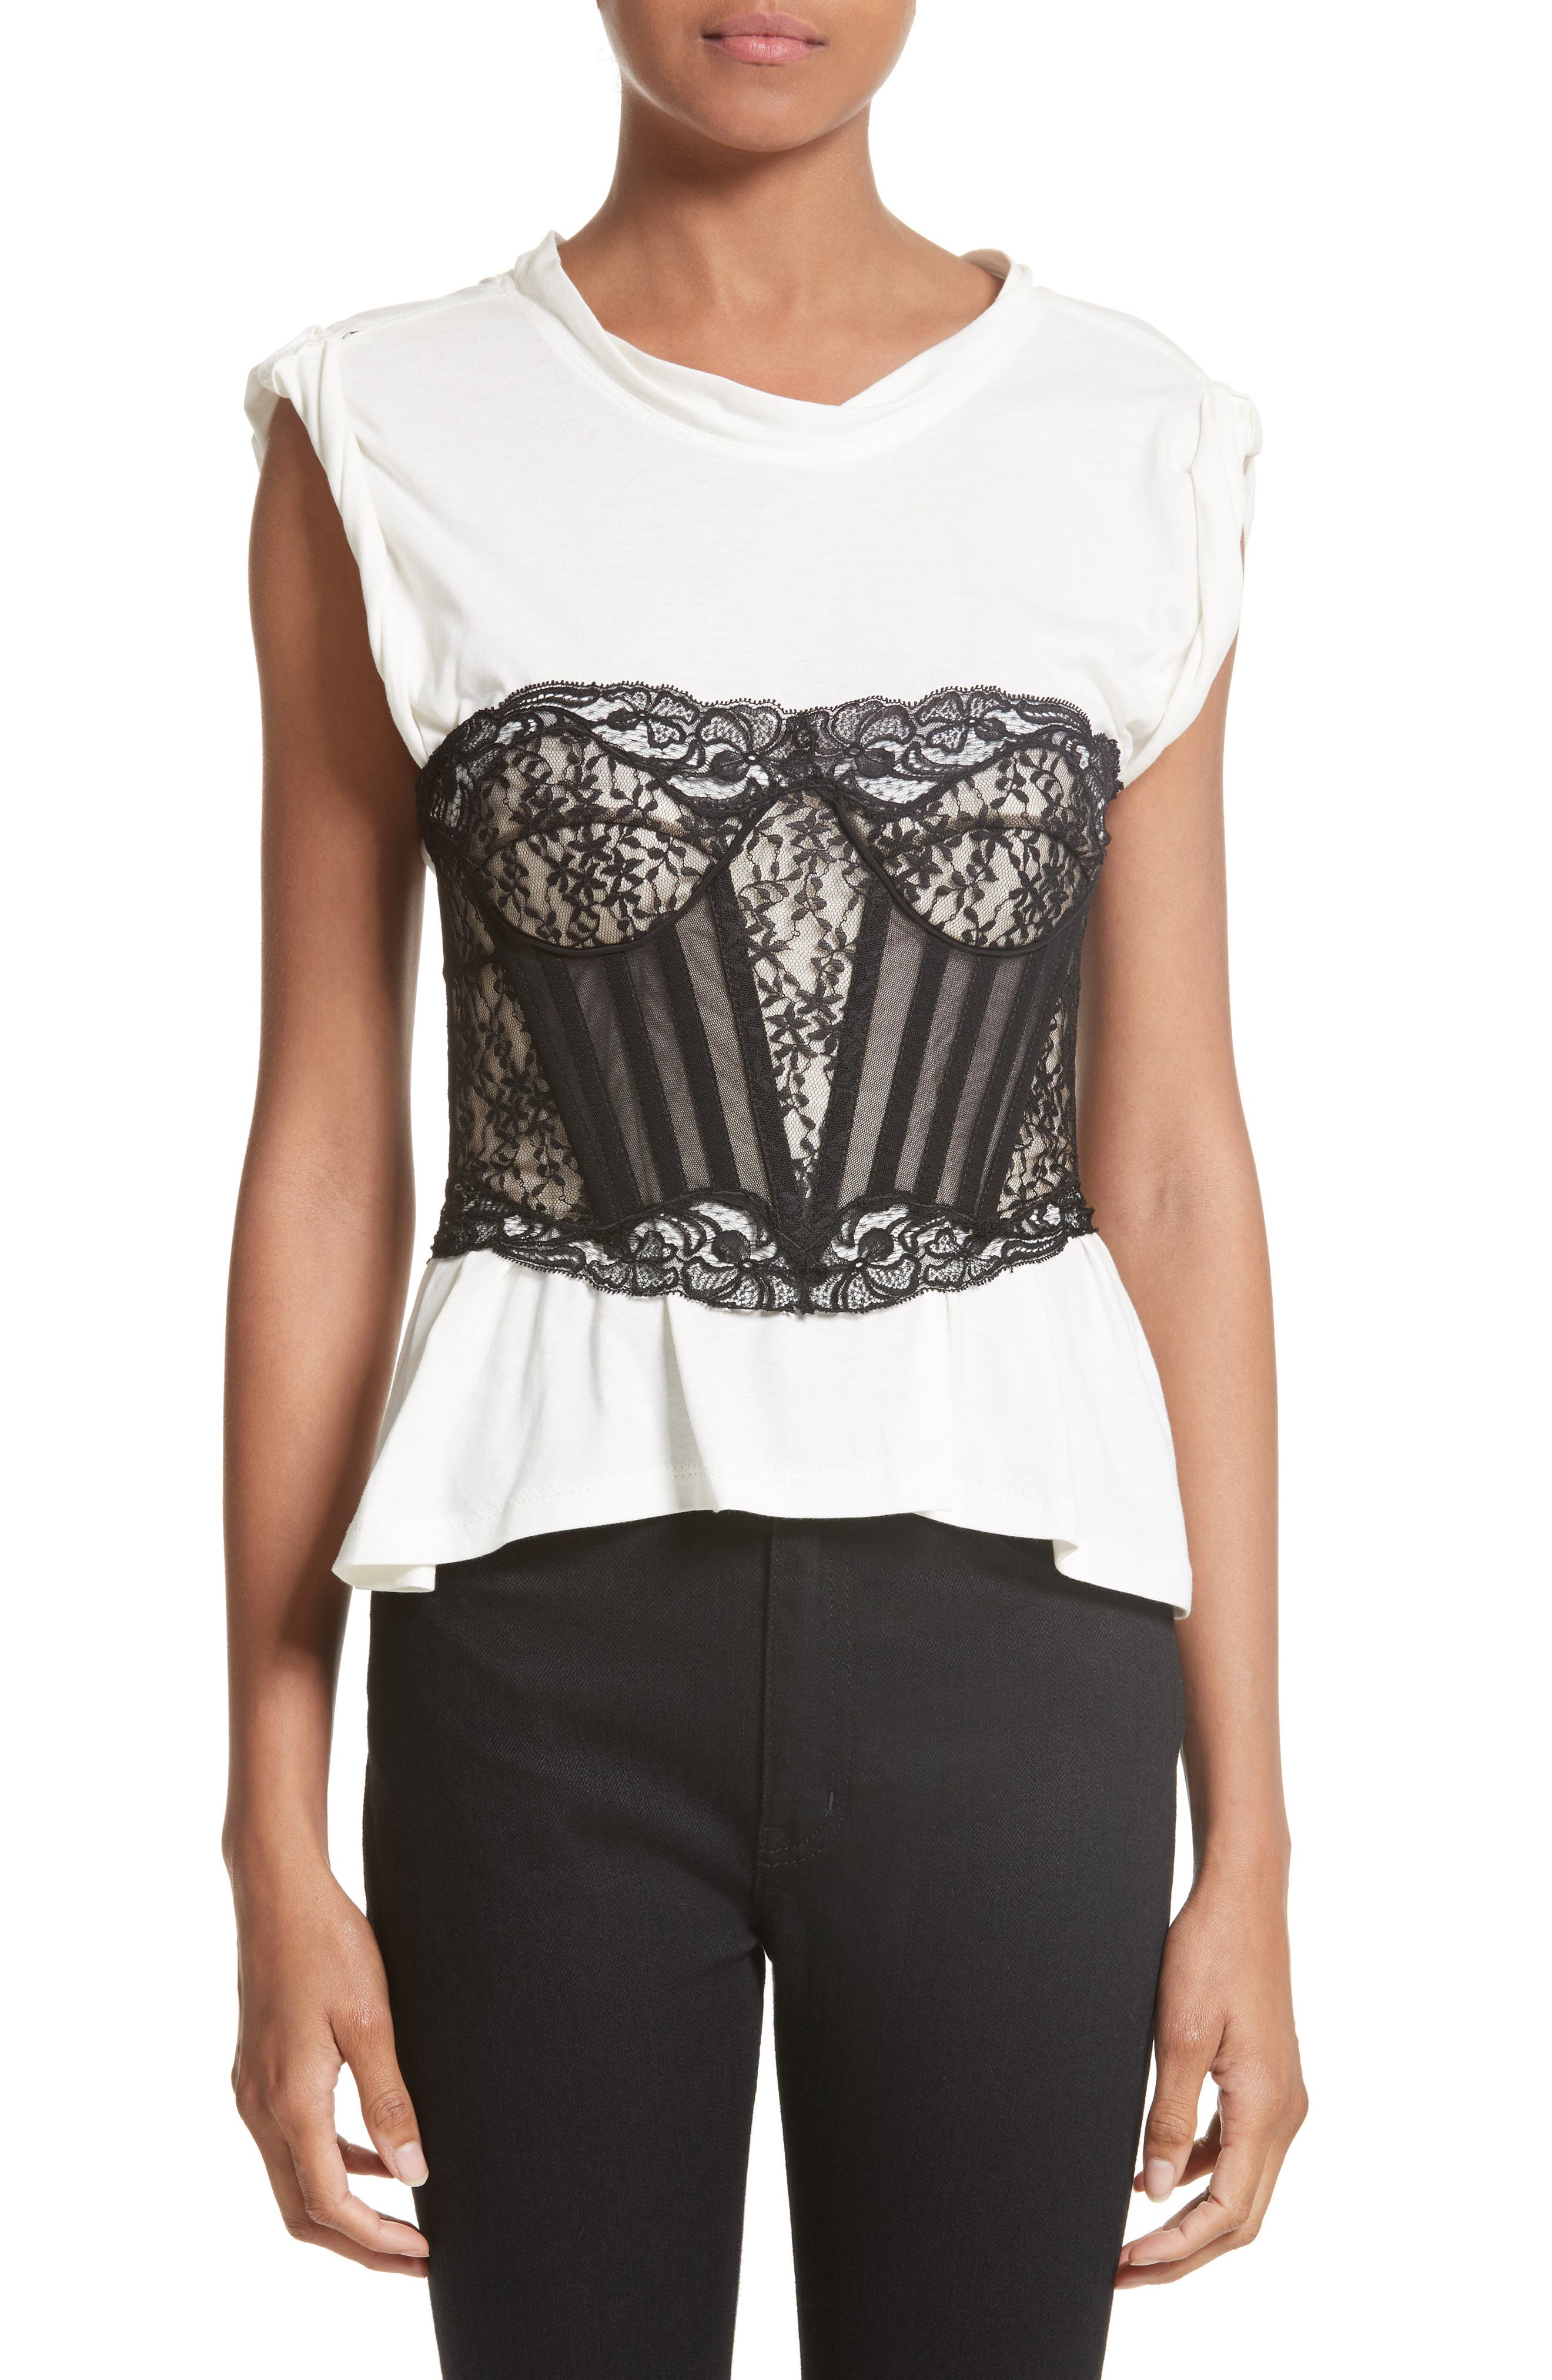 Main Image - Alexander Wang Cotton Top with Lace Bustier